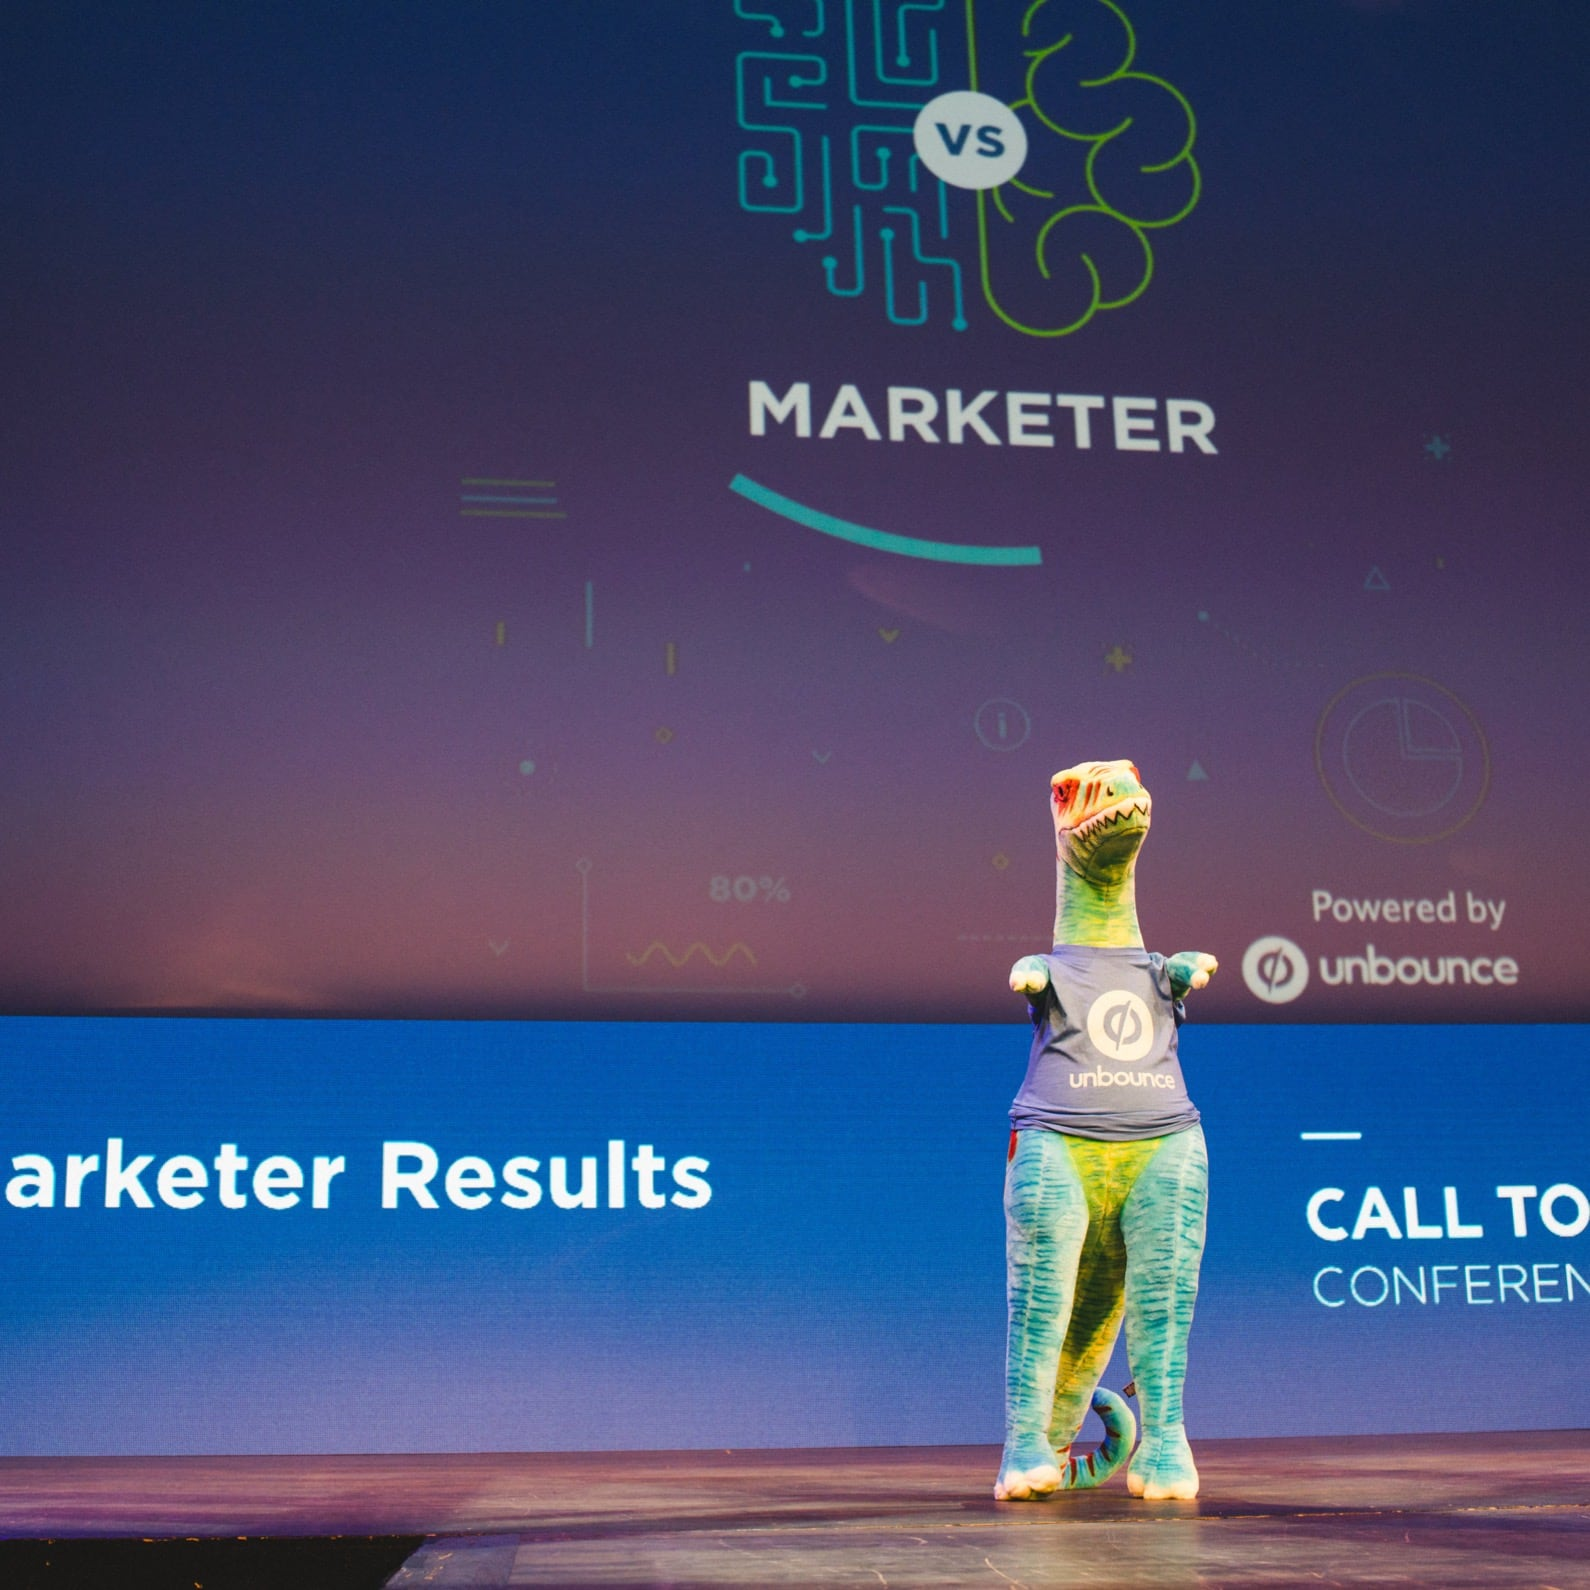 machine vs marketer prize